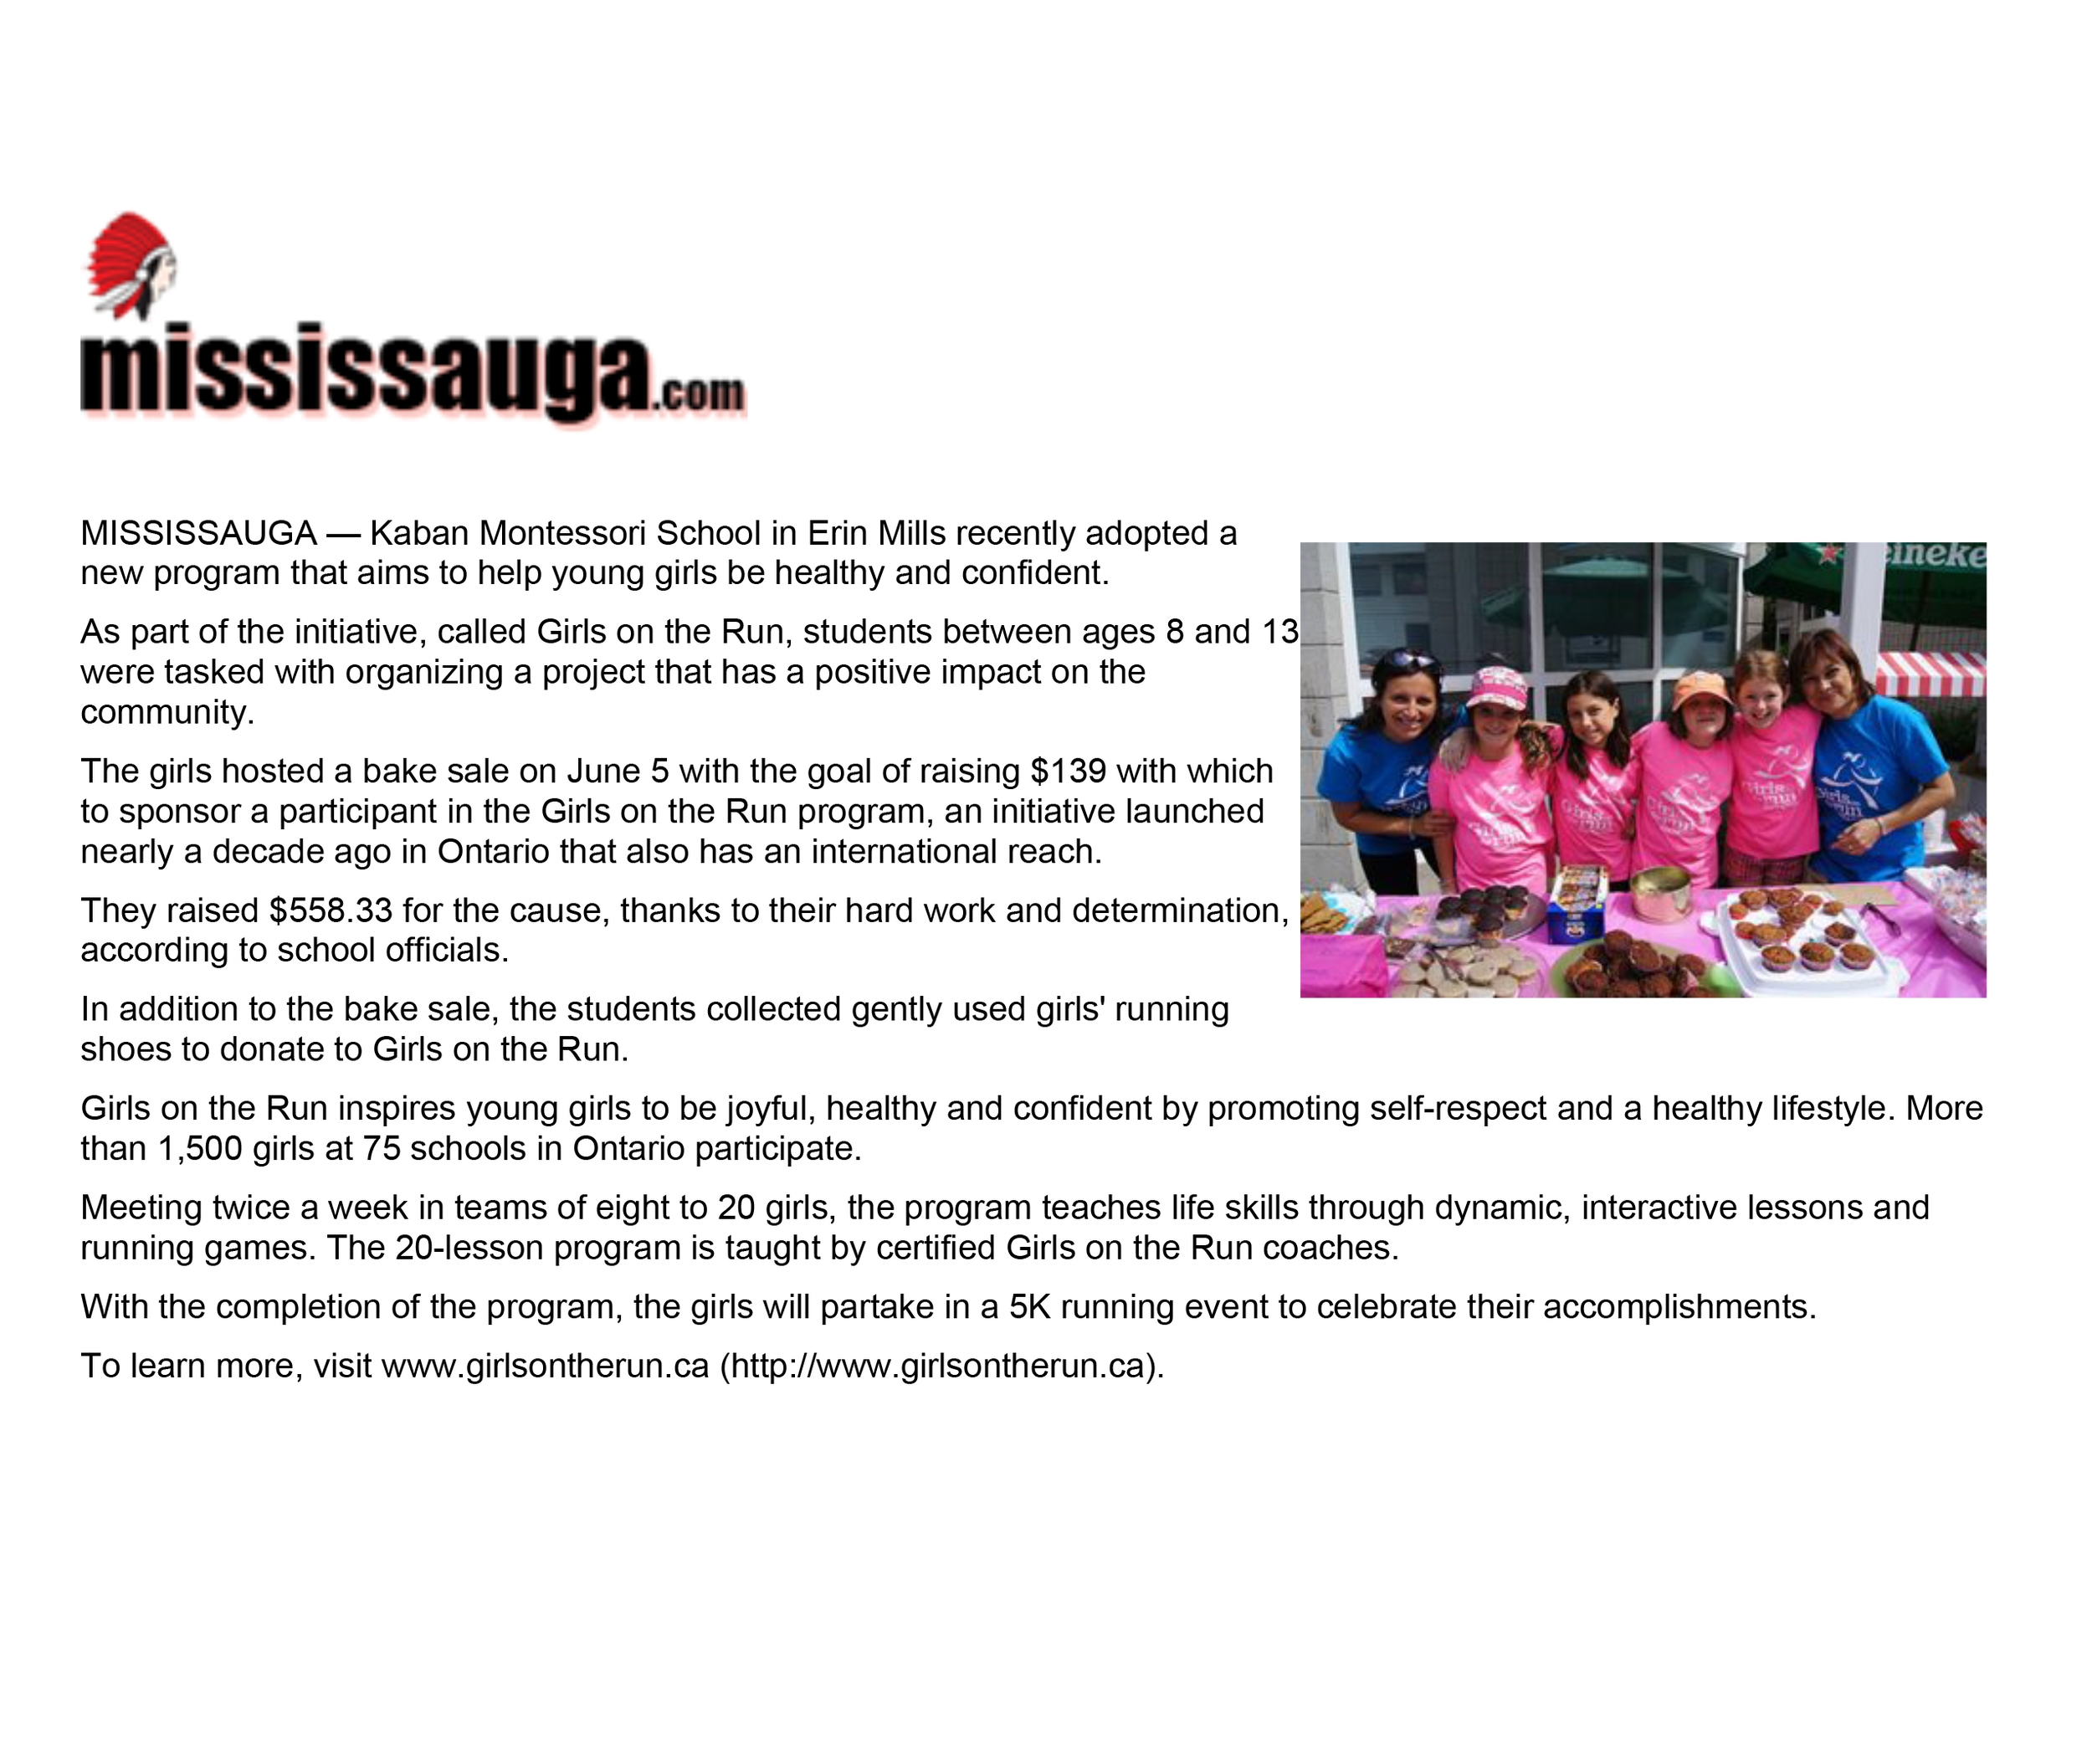 Kaban Montessori in Mississauga participates in Girls on the run program article in Mississauga.com